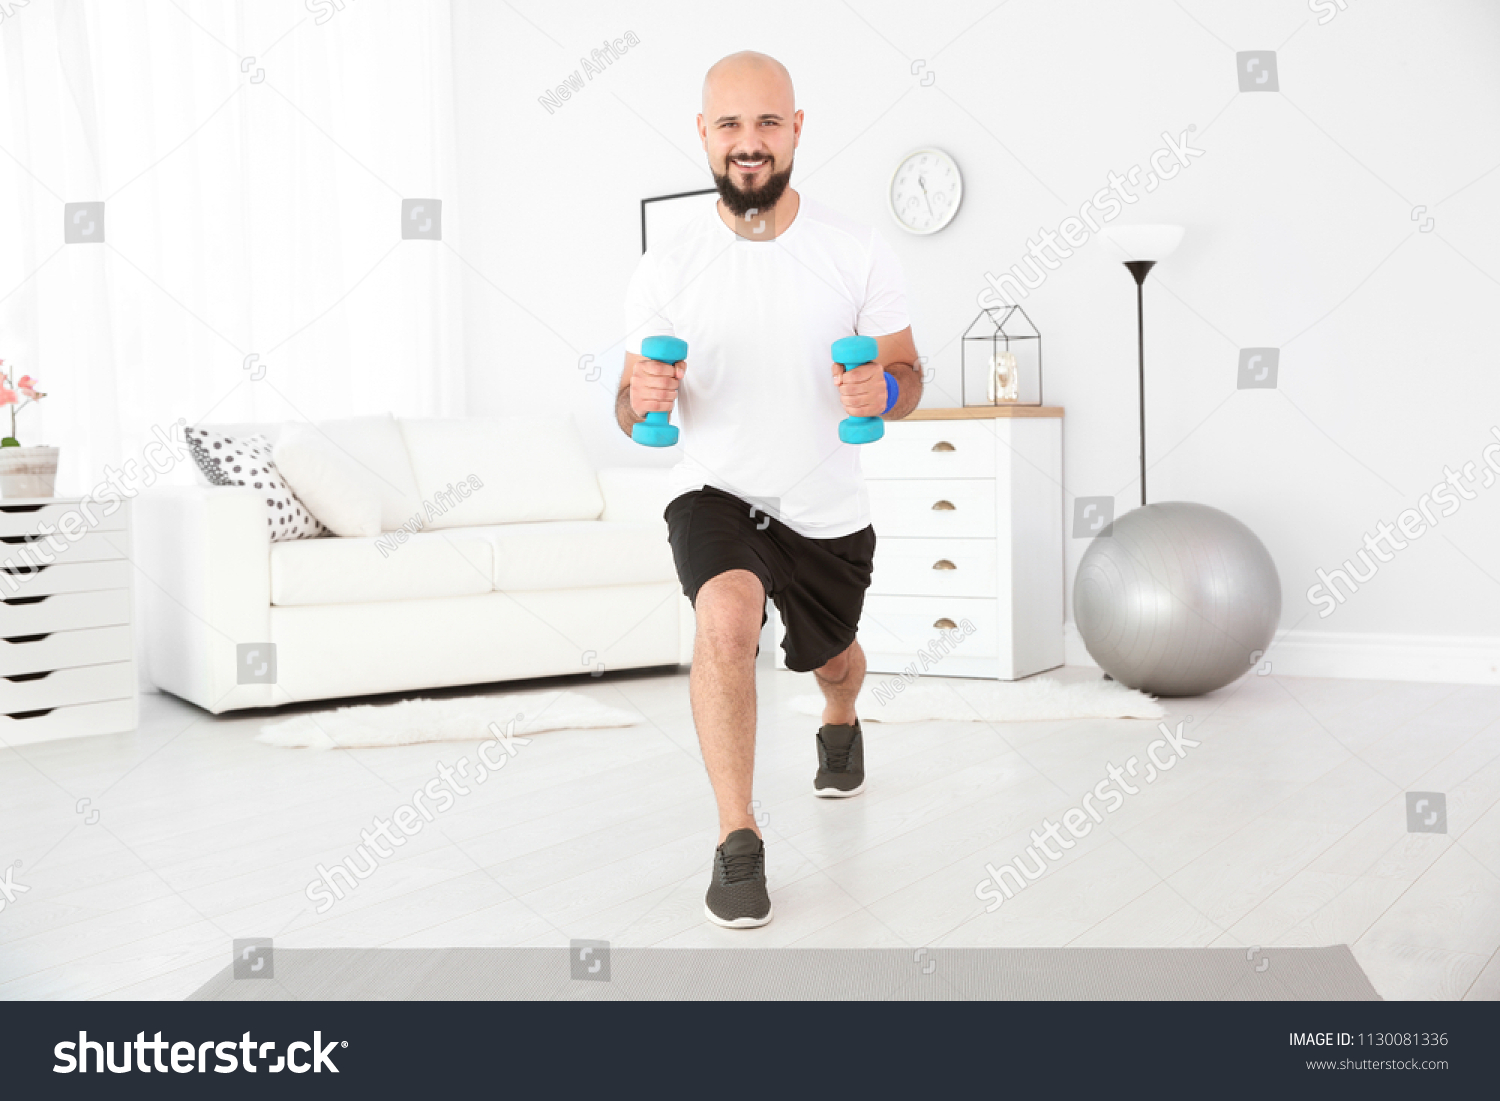 Overweight man doing exercise dumbbells home stock photo edit now